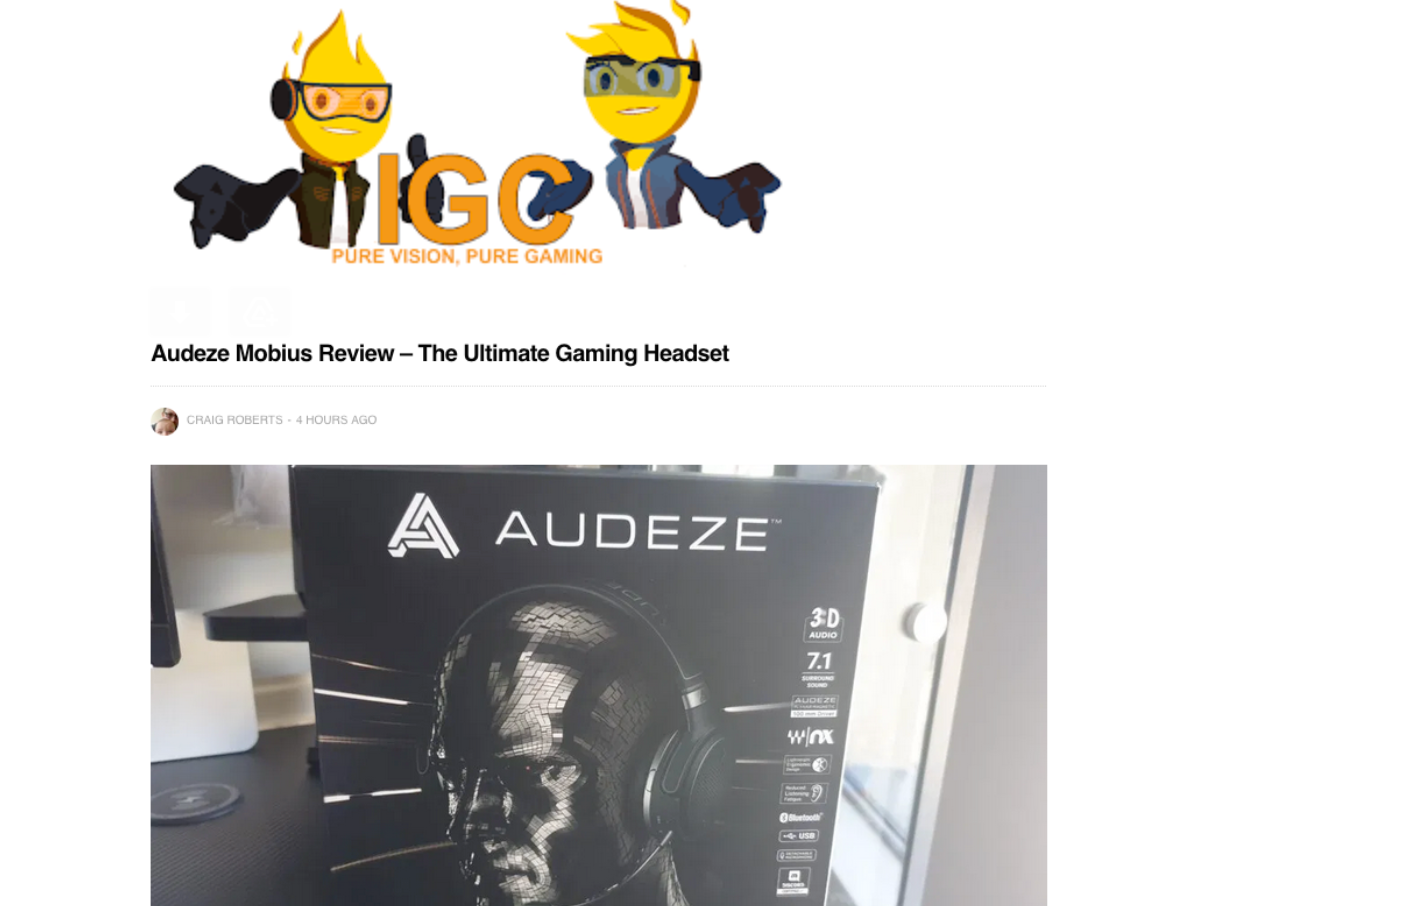 """The best gaming headset I have ever had the opportunity to own and review"" says IGC of Audeze Mobius"